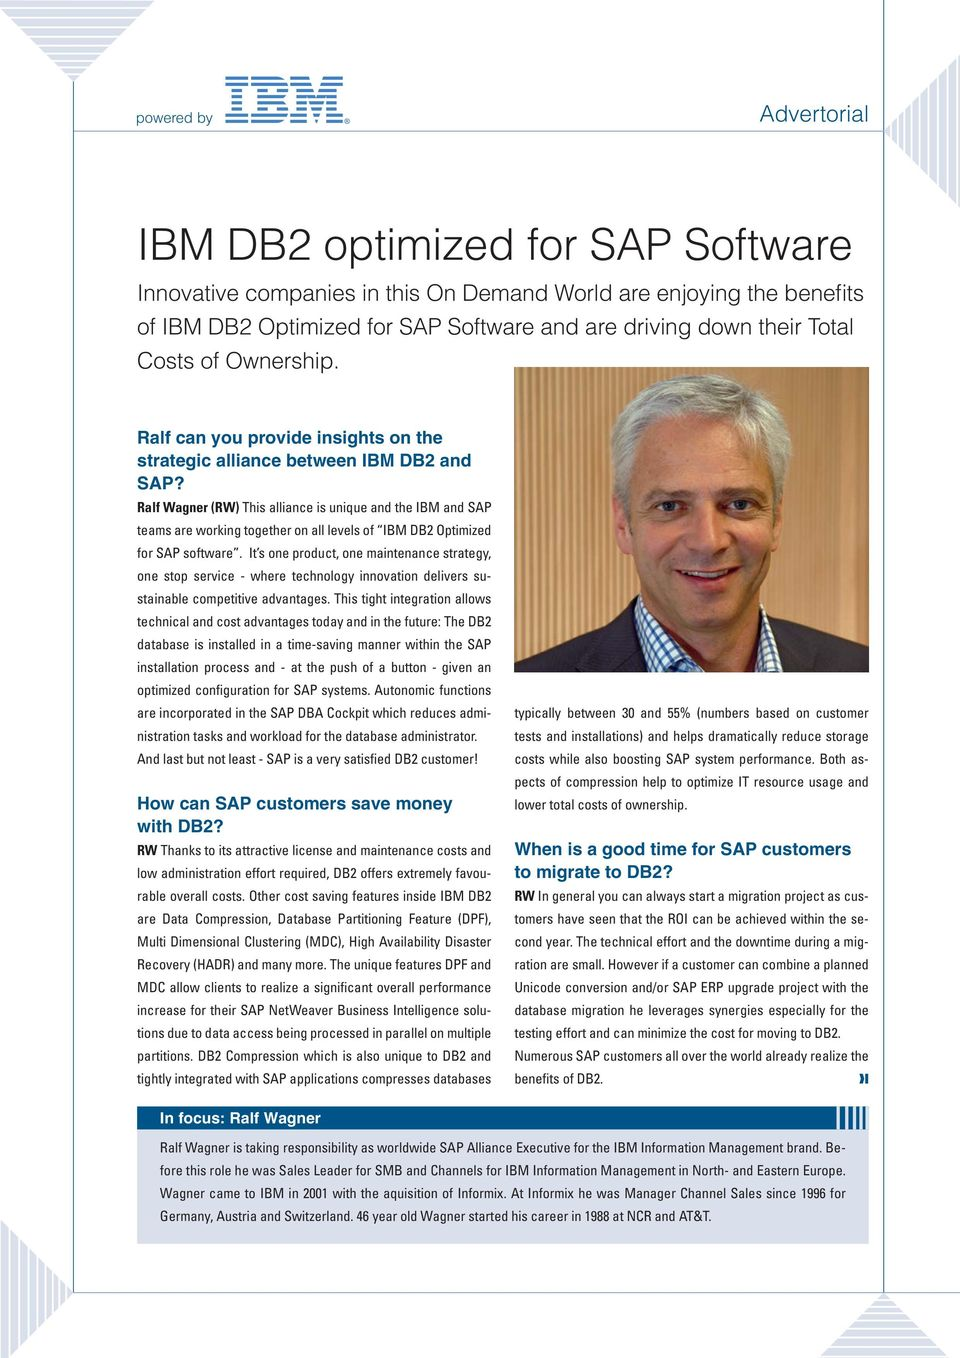 Ralf Wagner (RW) This alliance is unique and the IBM and SAP teams are working together on all levels of IBM DB2 Optimized for SAP software.